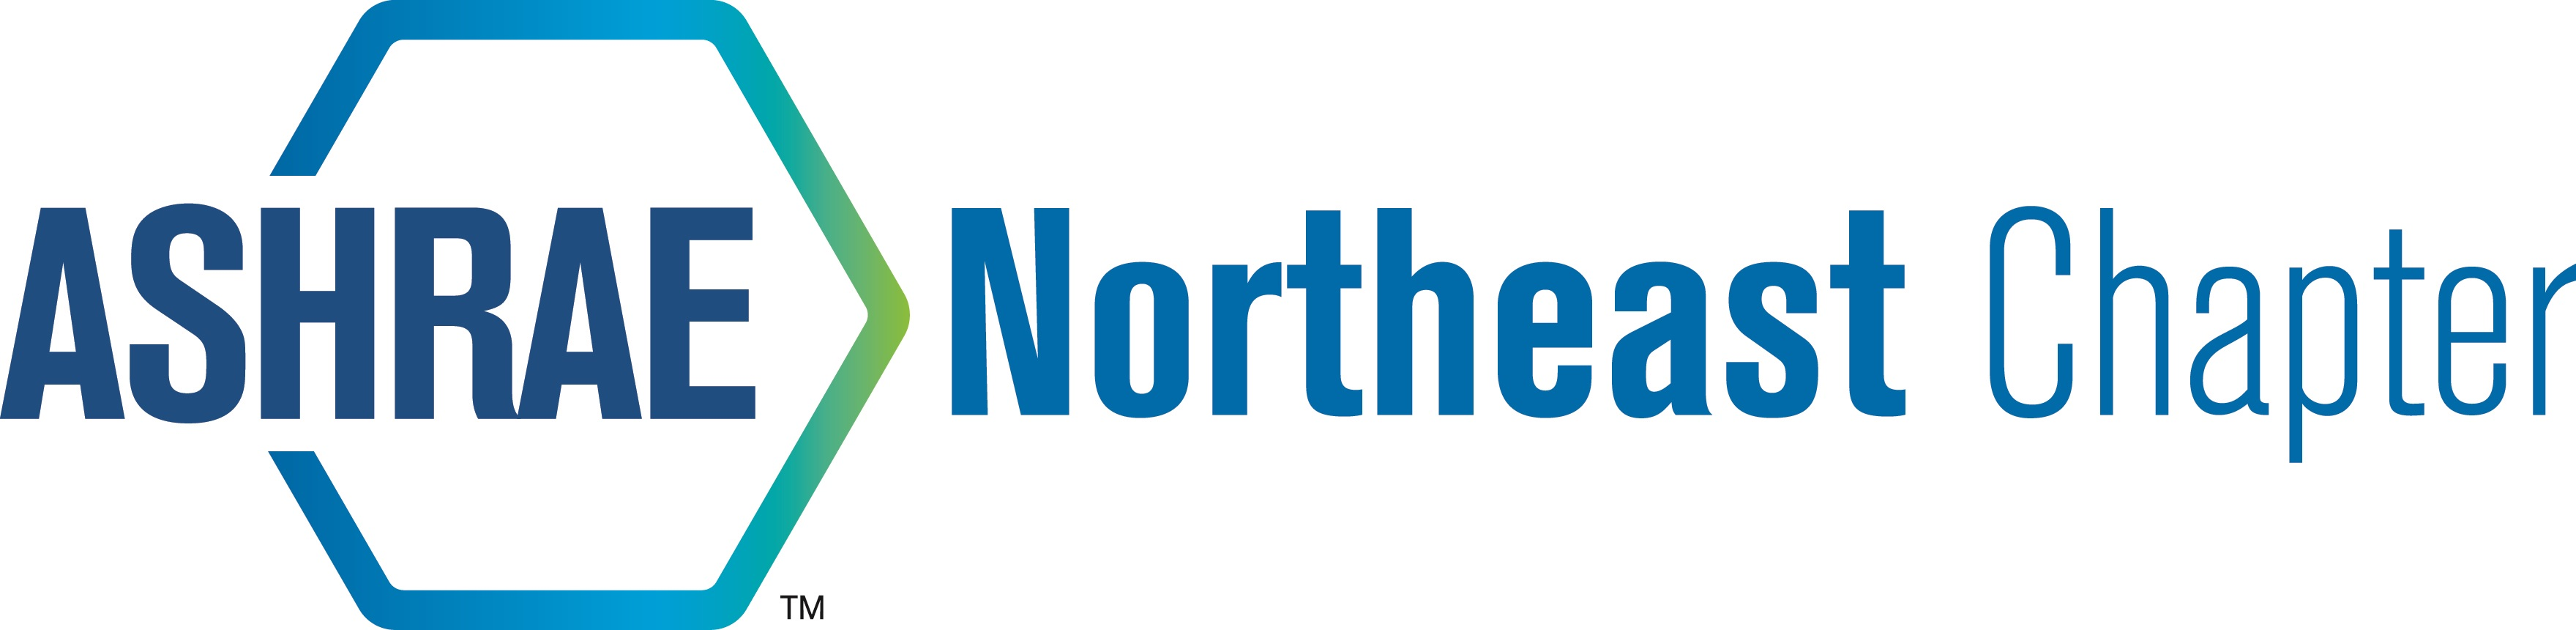 ASHRAE Northeast Chapter